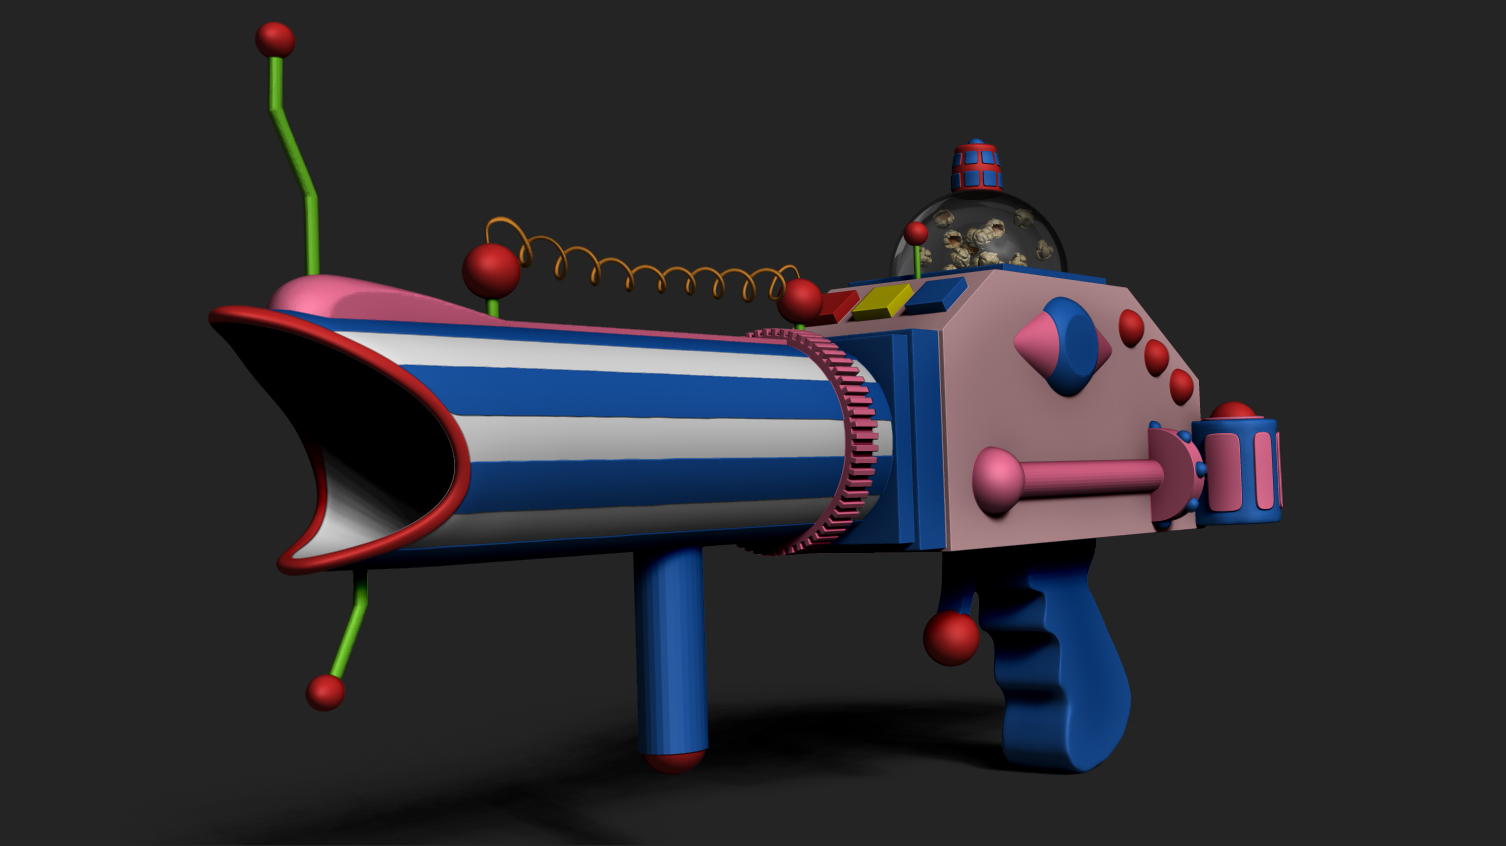 Popcorn gun killer klowns from outer space wip 2 by for Return of the killer klowns from outer space